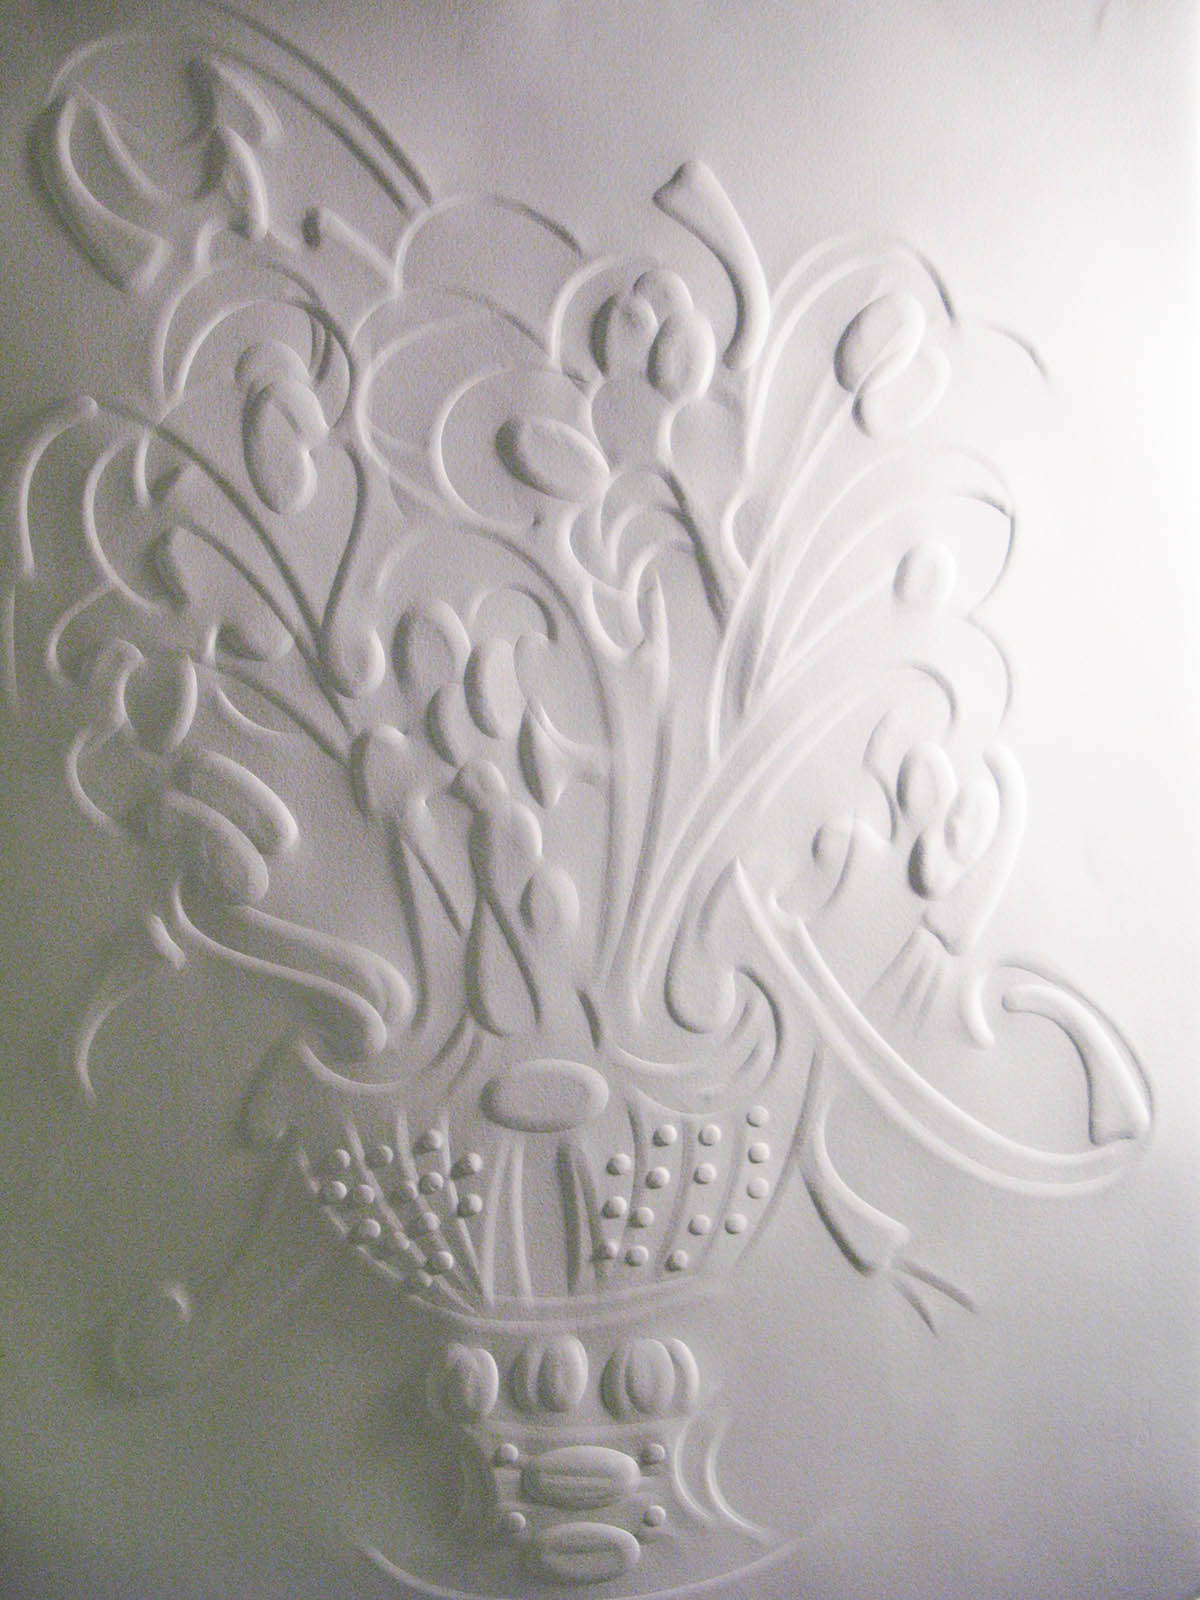 Embossed paper artwork by Andria Marcussen.